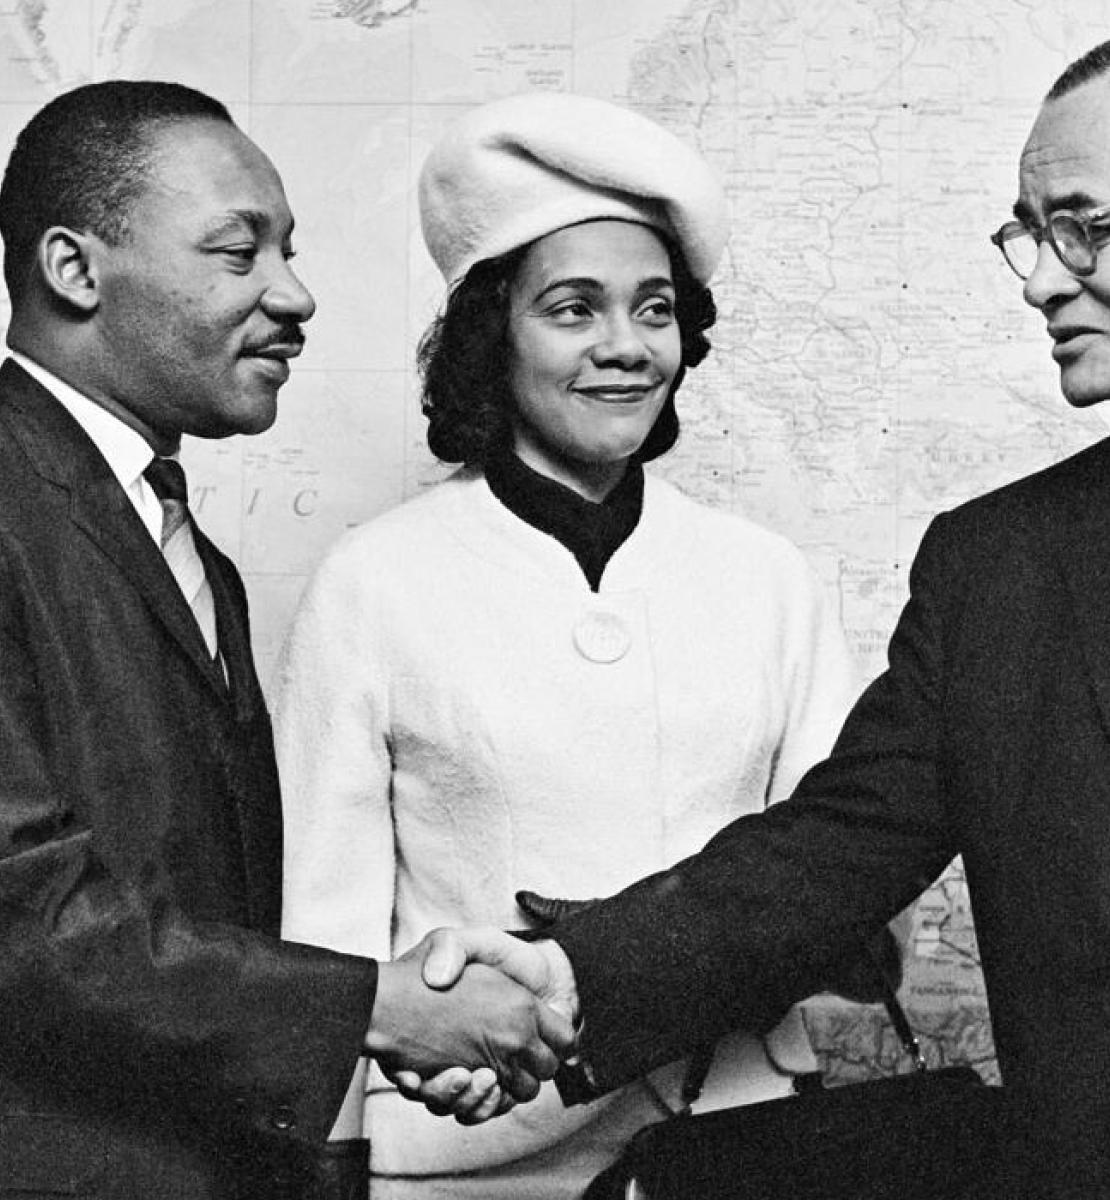 Black and white photo of Dr. Martin Luther King and his wife Coretta Scott King are seen being greeted by Mr. Ralph J. Bunche, UN Under-Secretary for Special Political Affairs in 1964.